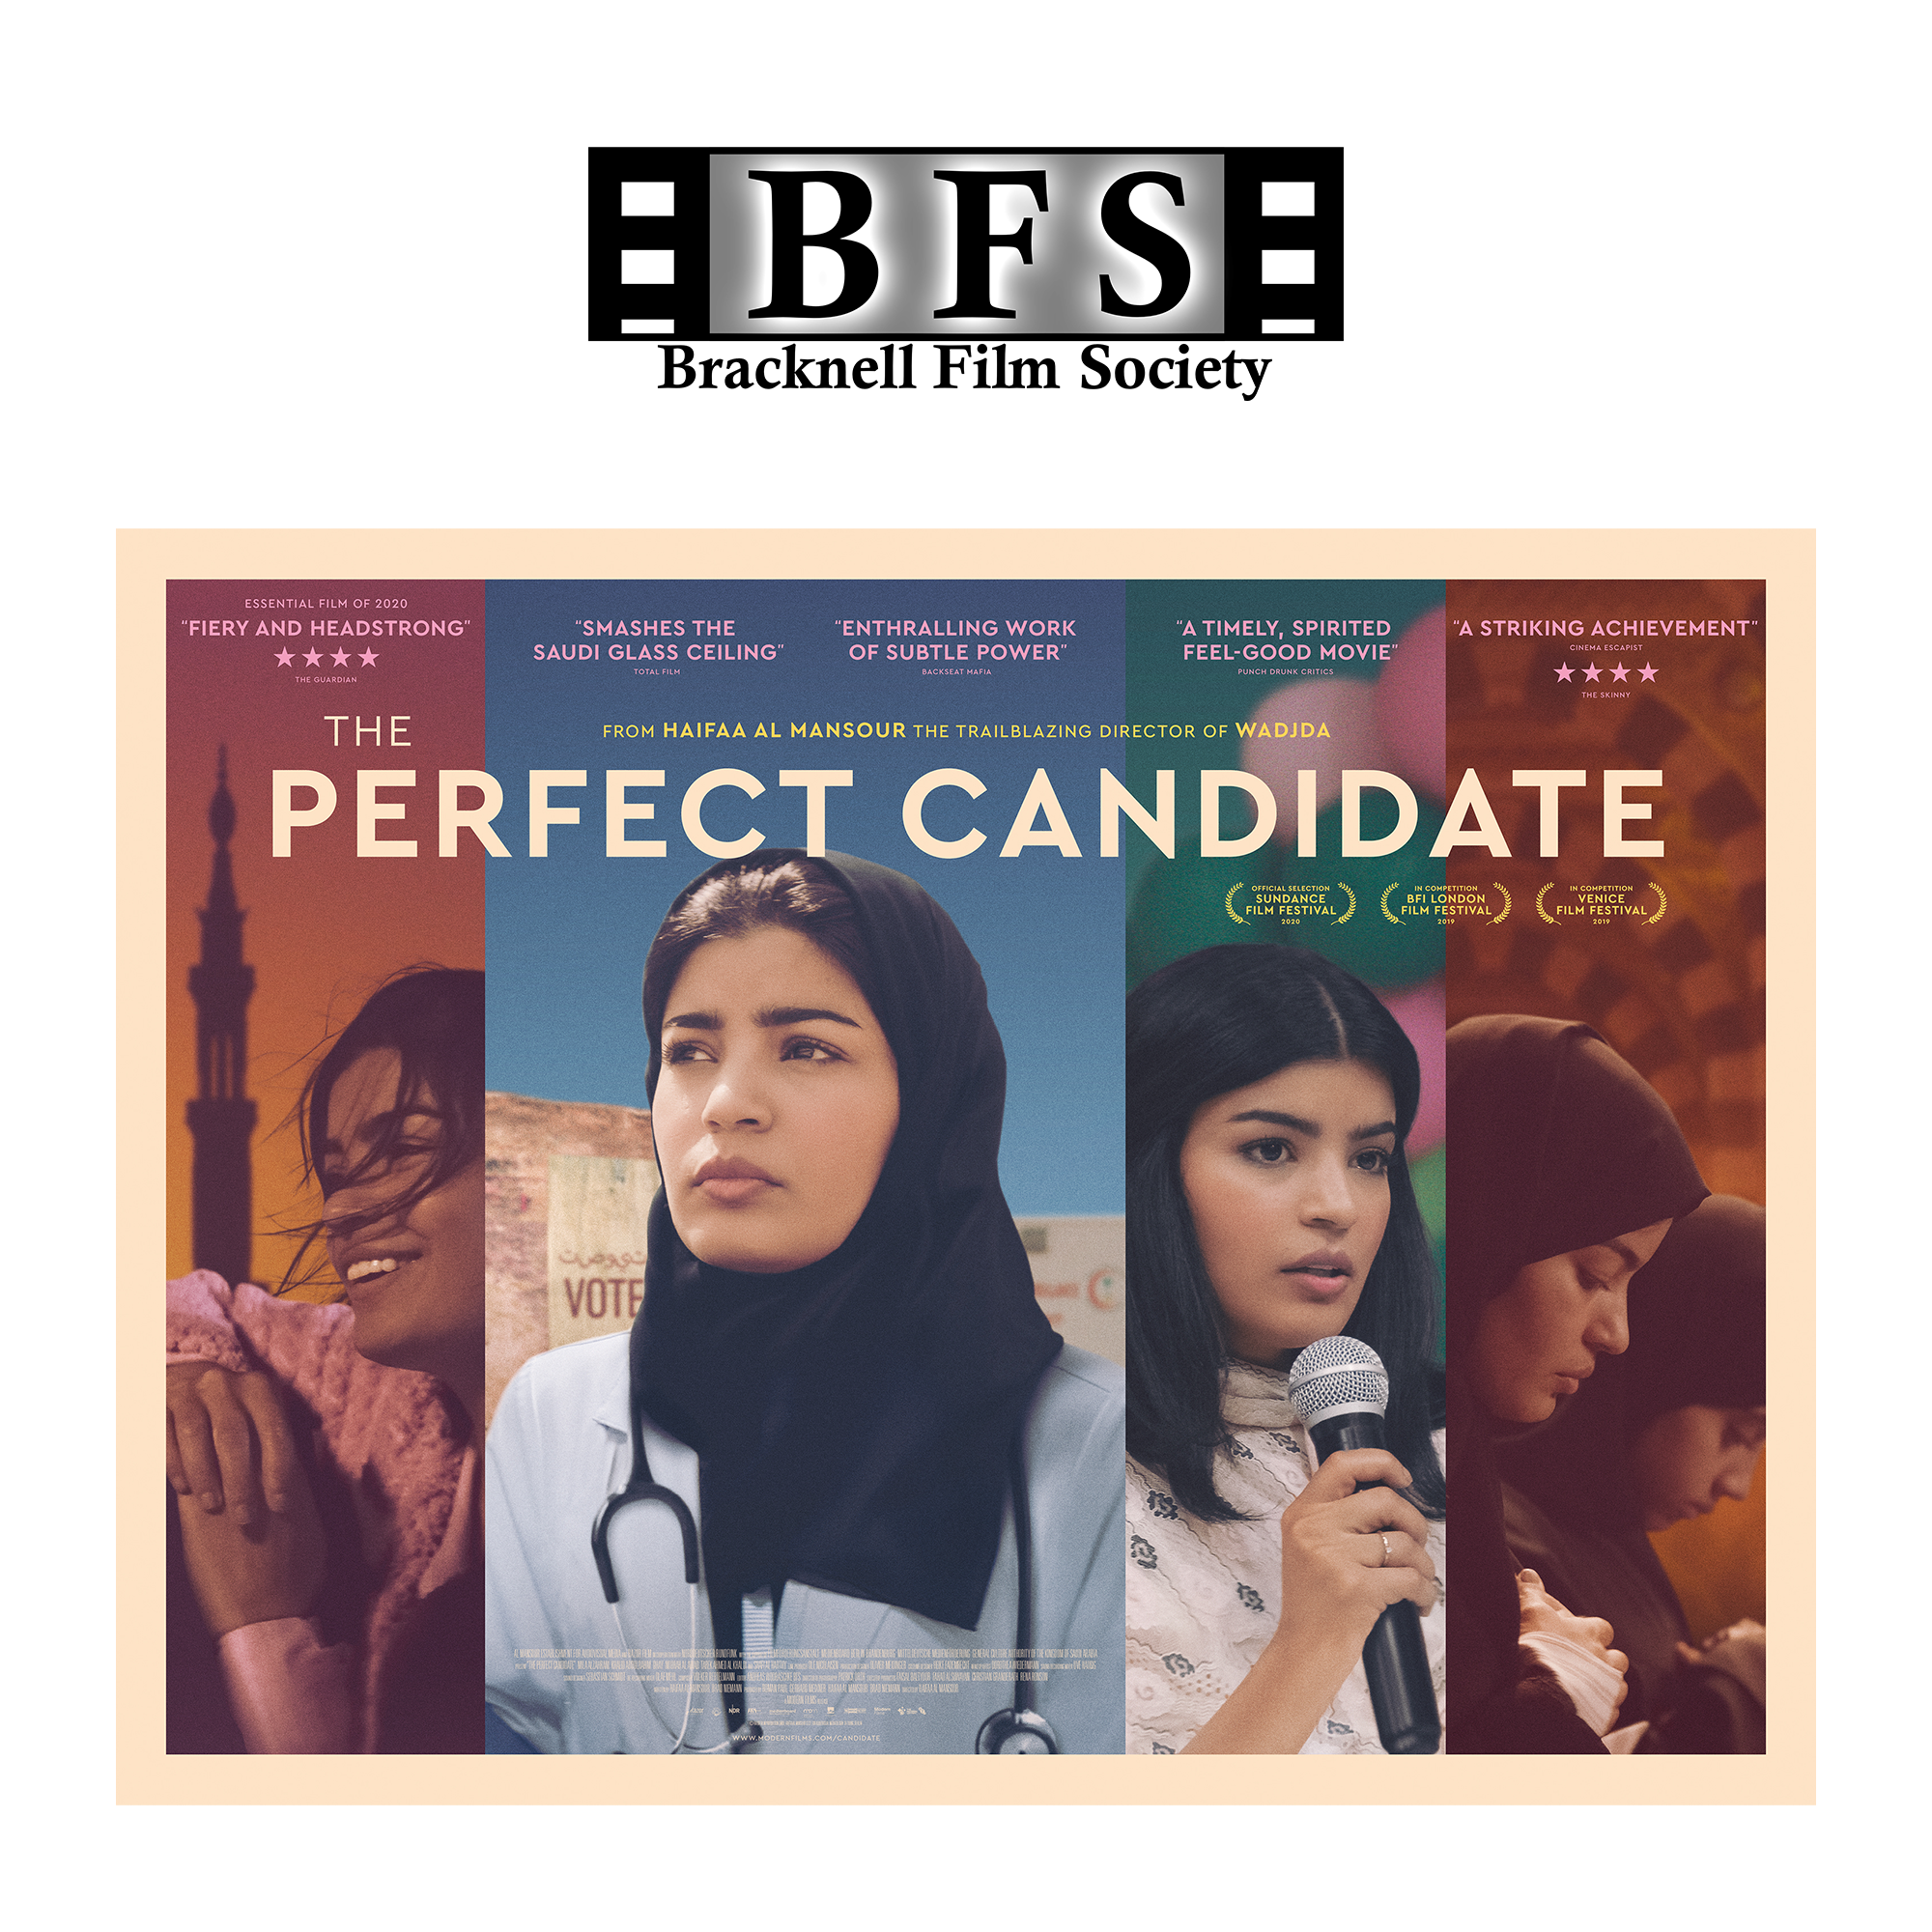 The Perfect Candidate at Bracknell Film Society